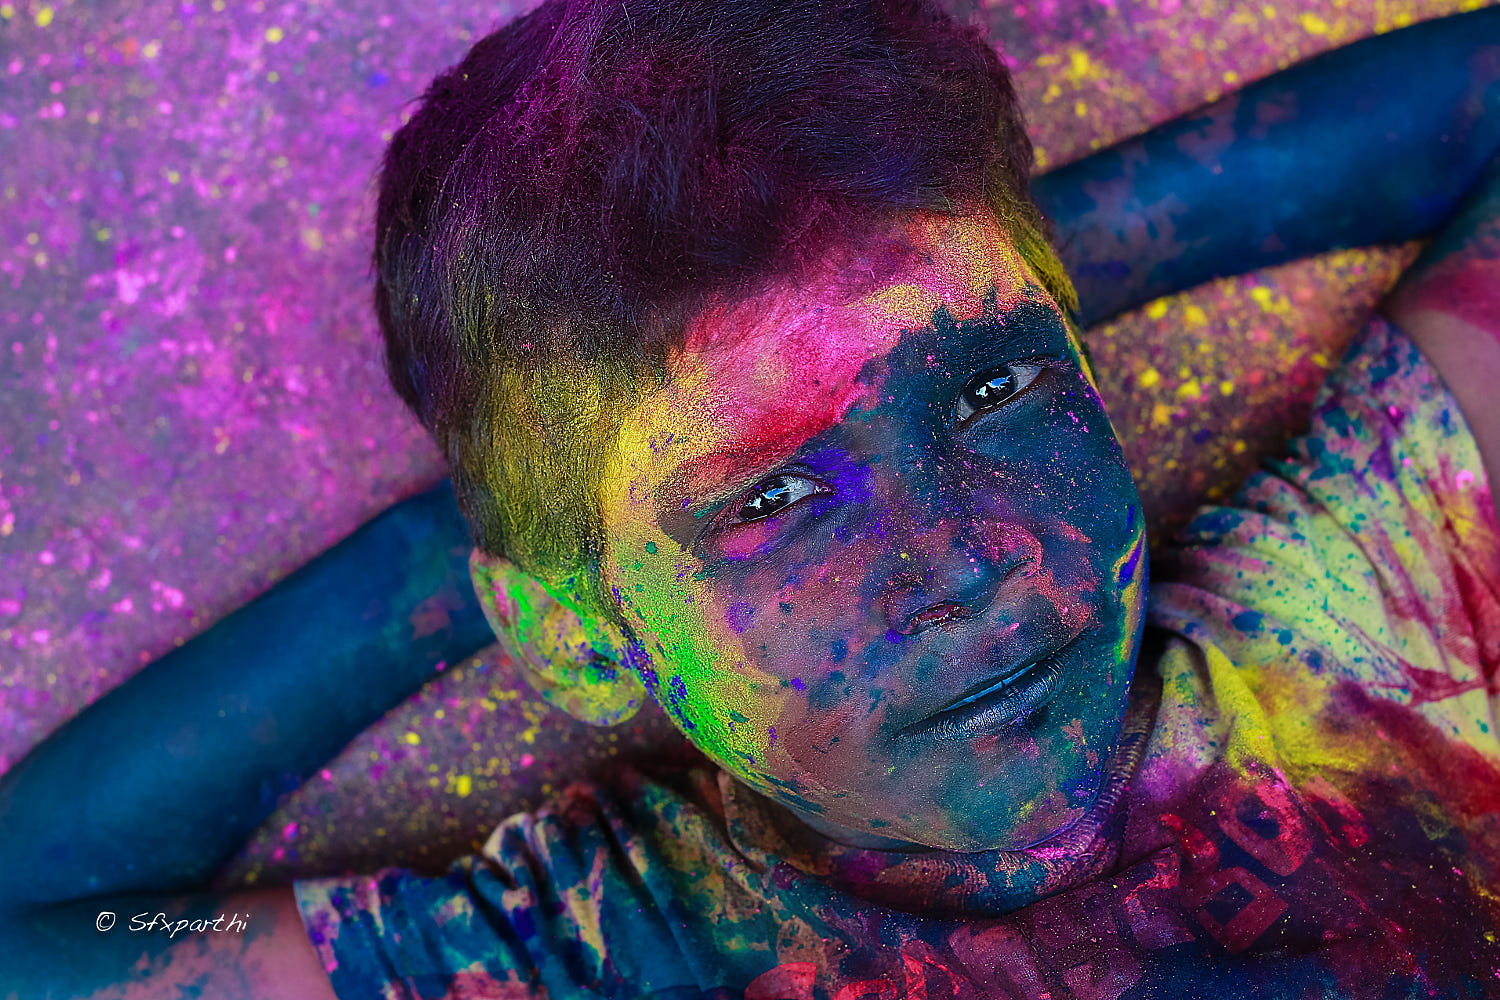 lifestyle photography colorful boy by sfx parthi